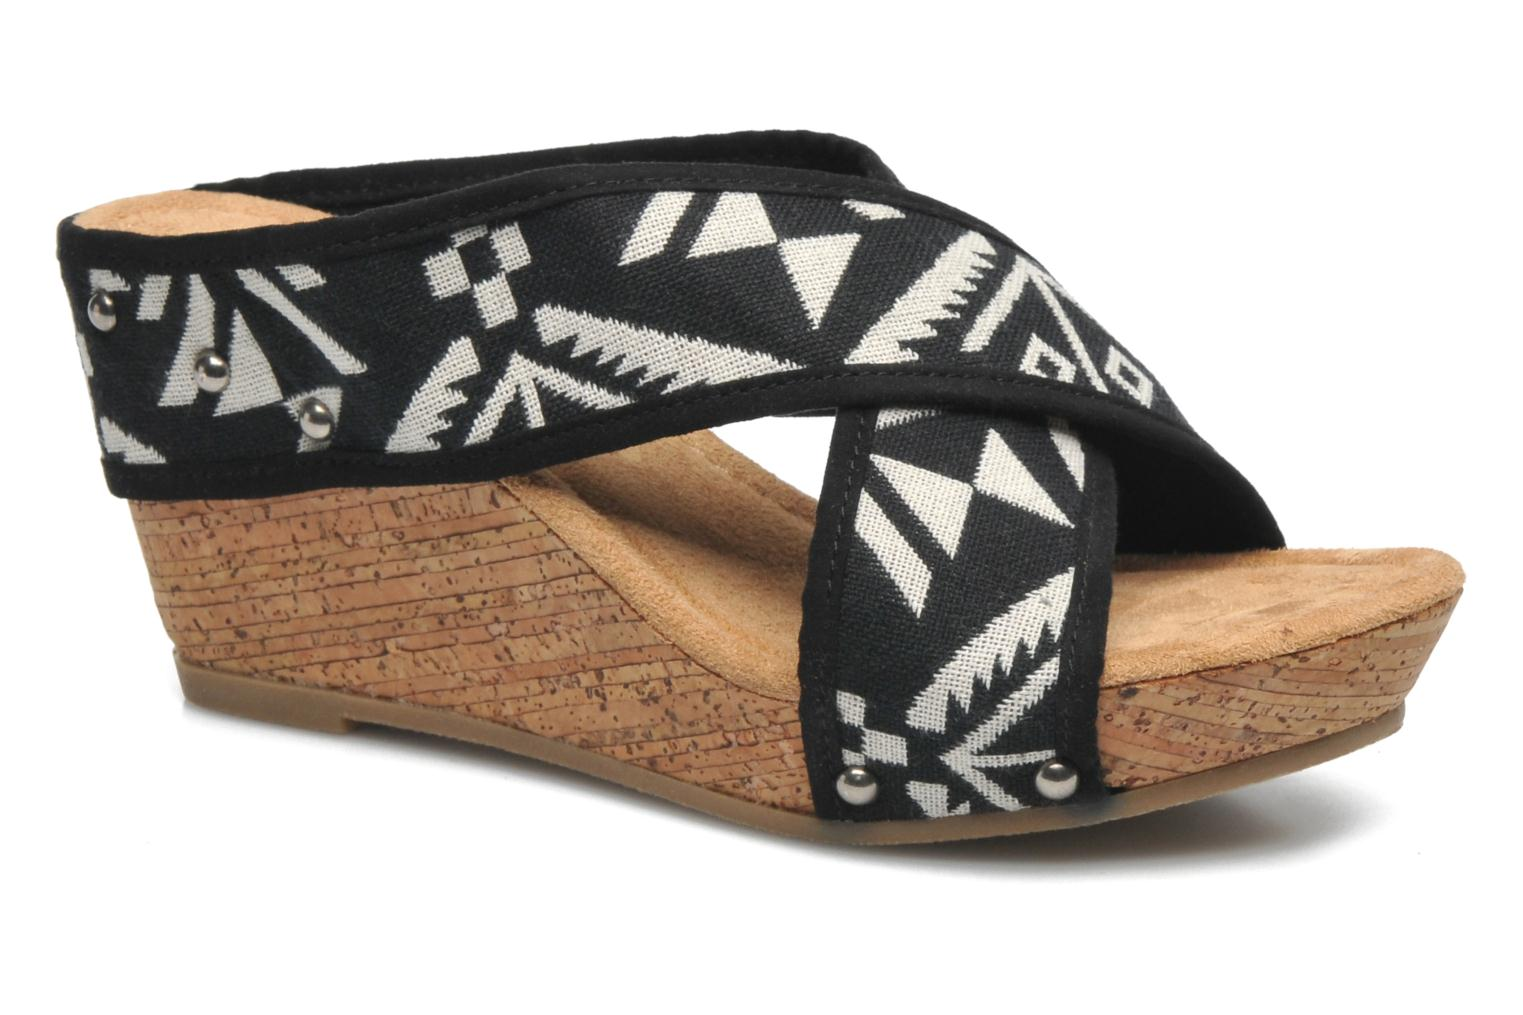 Lainey Black tierra print